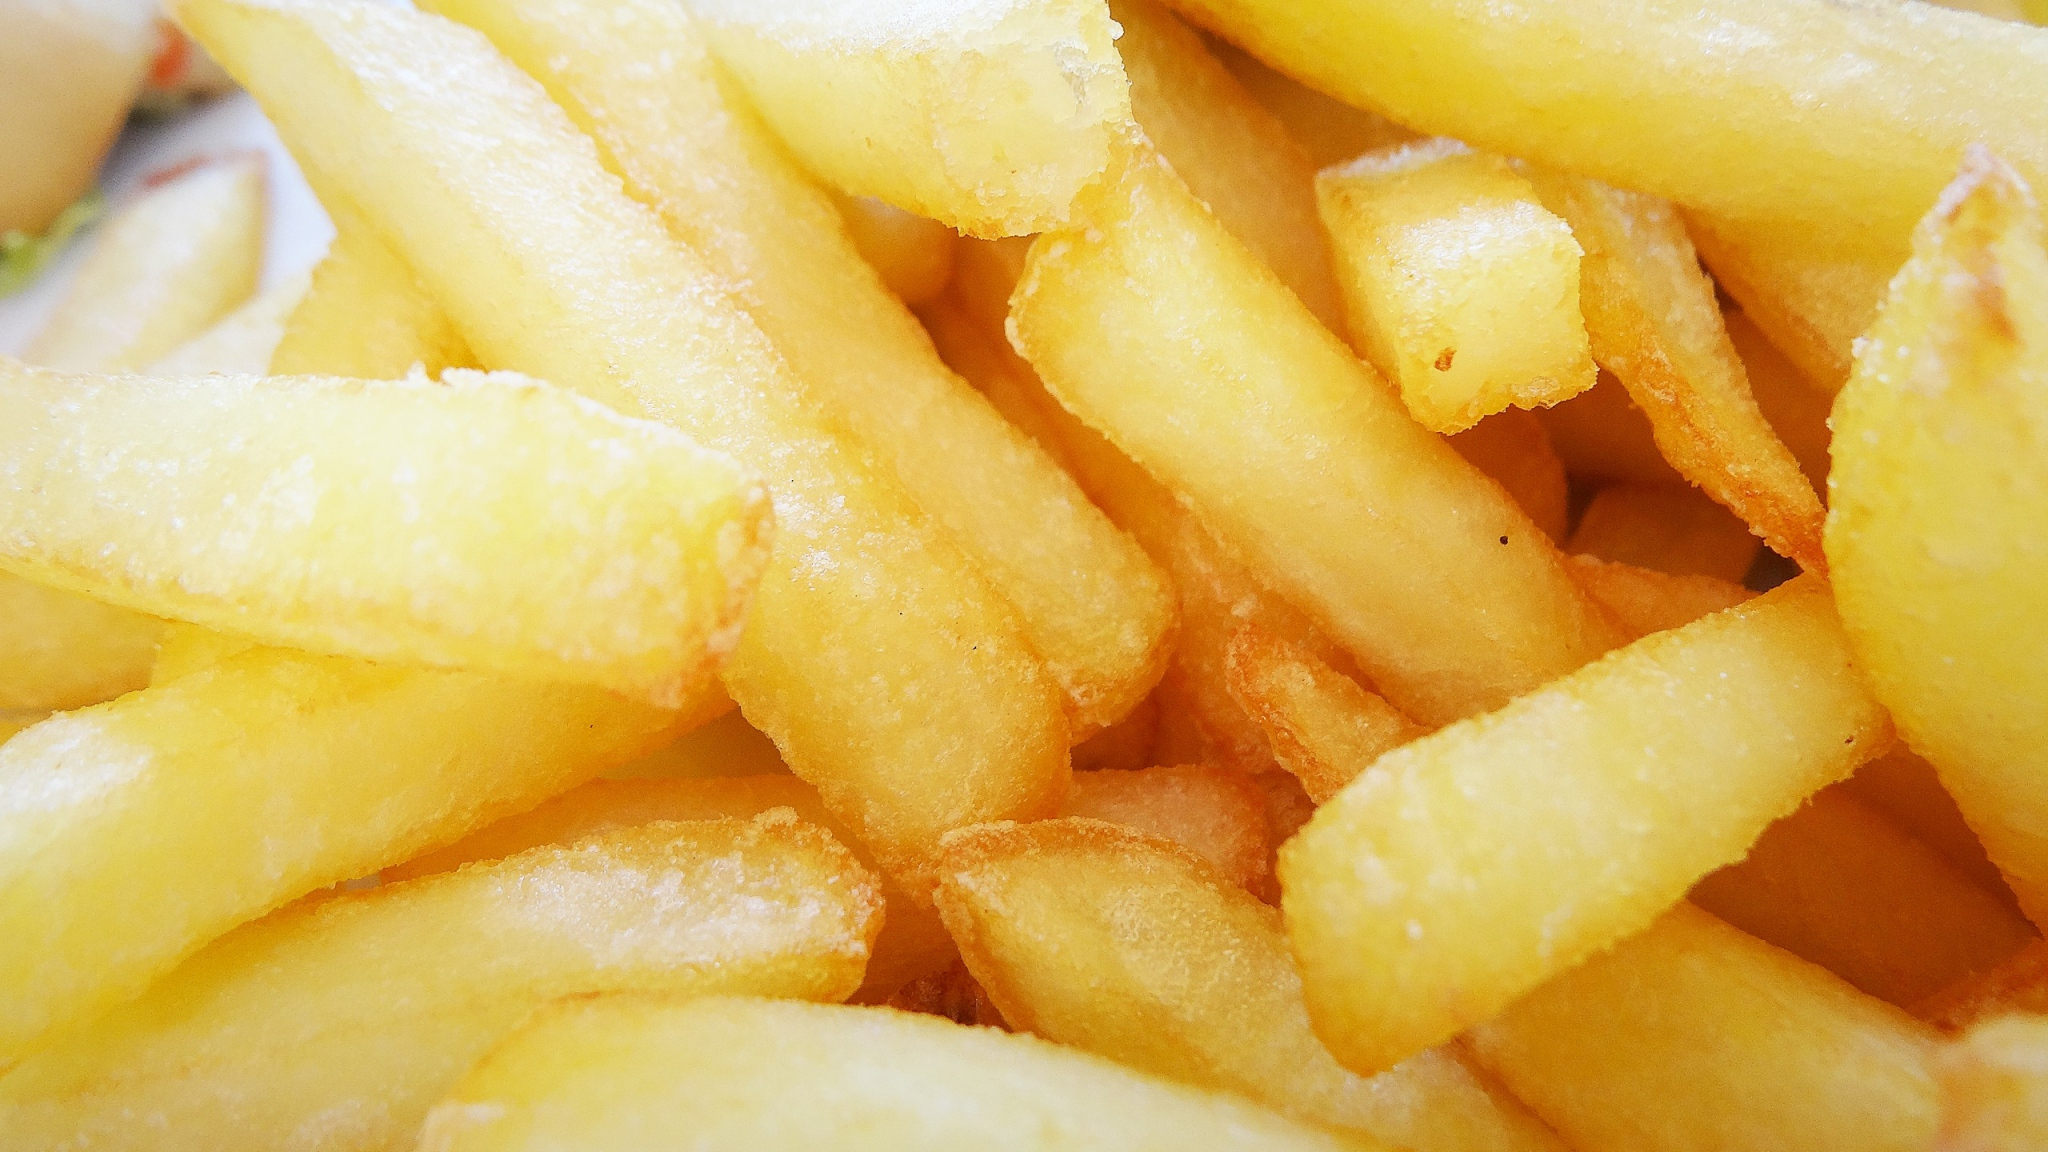 French Fries & Potato specialties